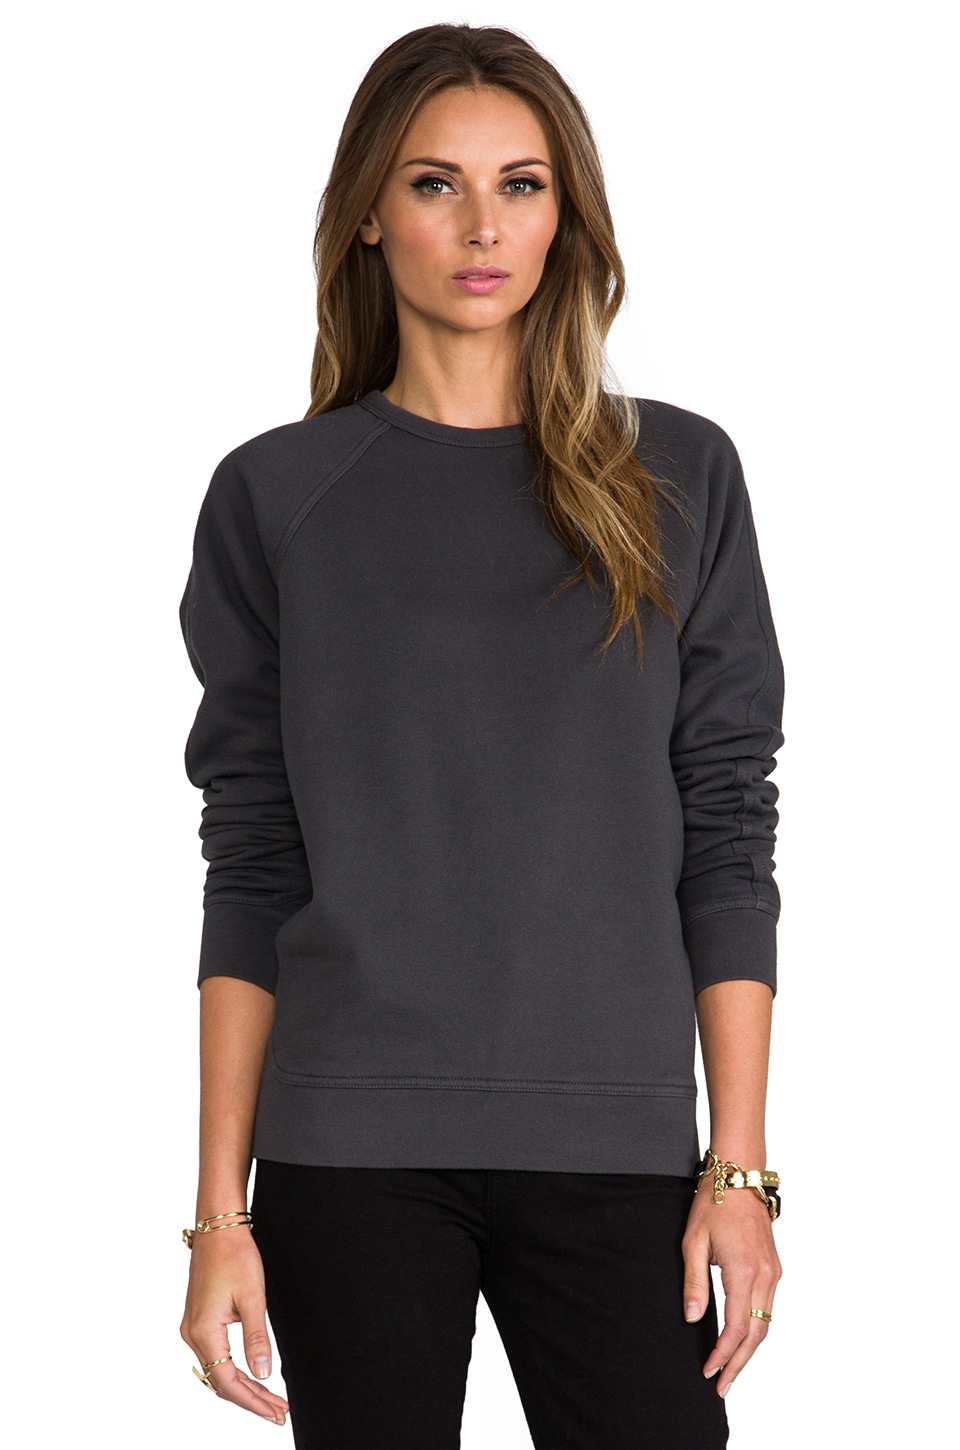 T by Alexander Wang Vintage Fleece Sweatshirt in Charcoal